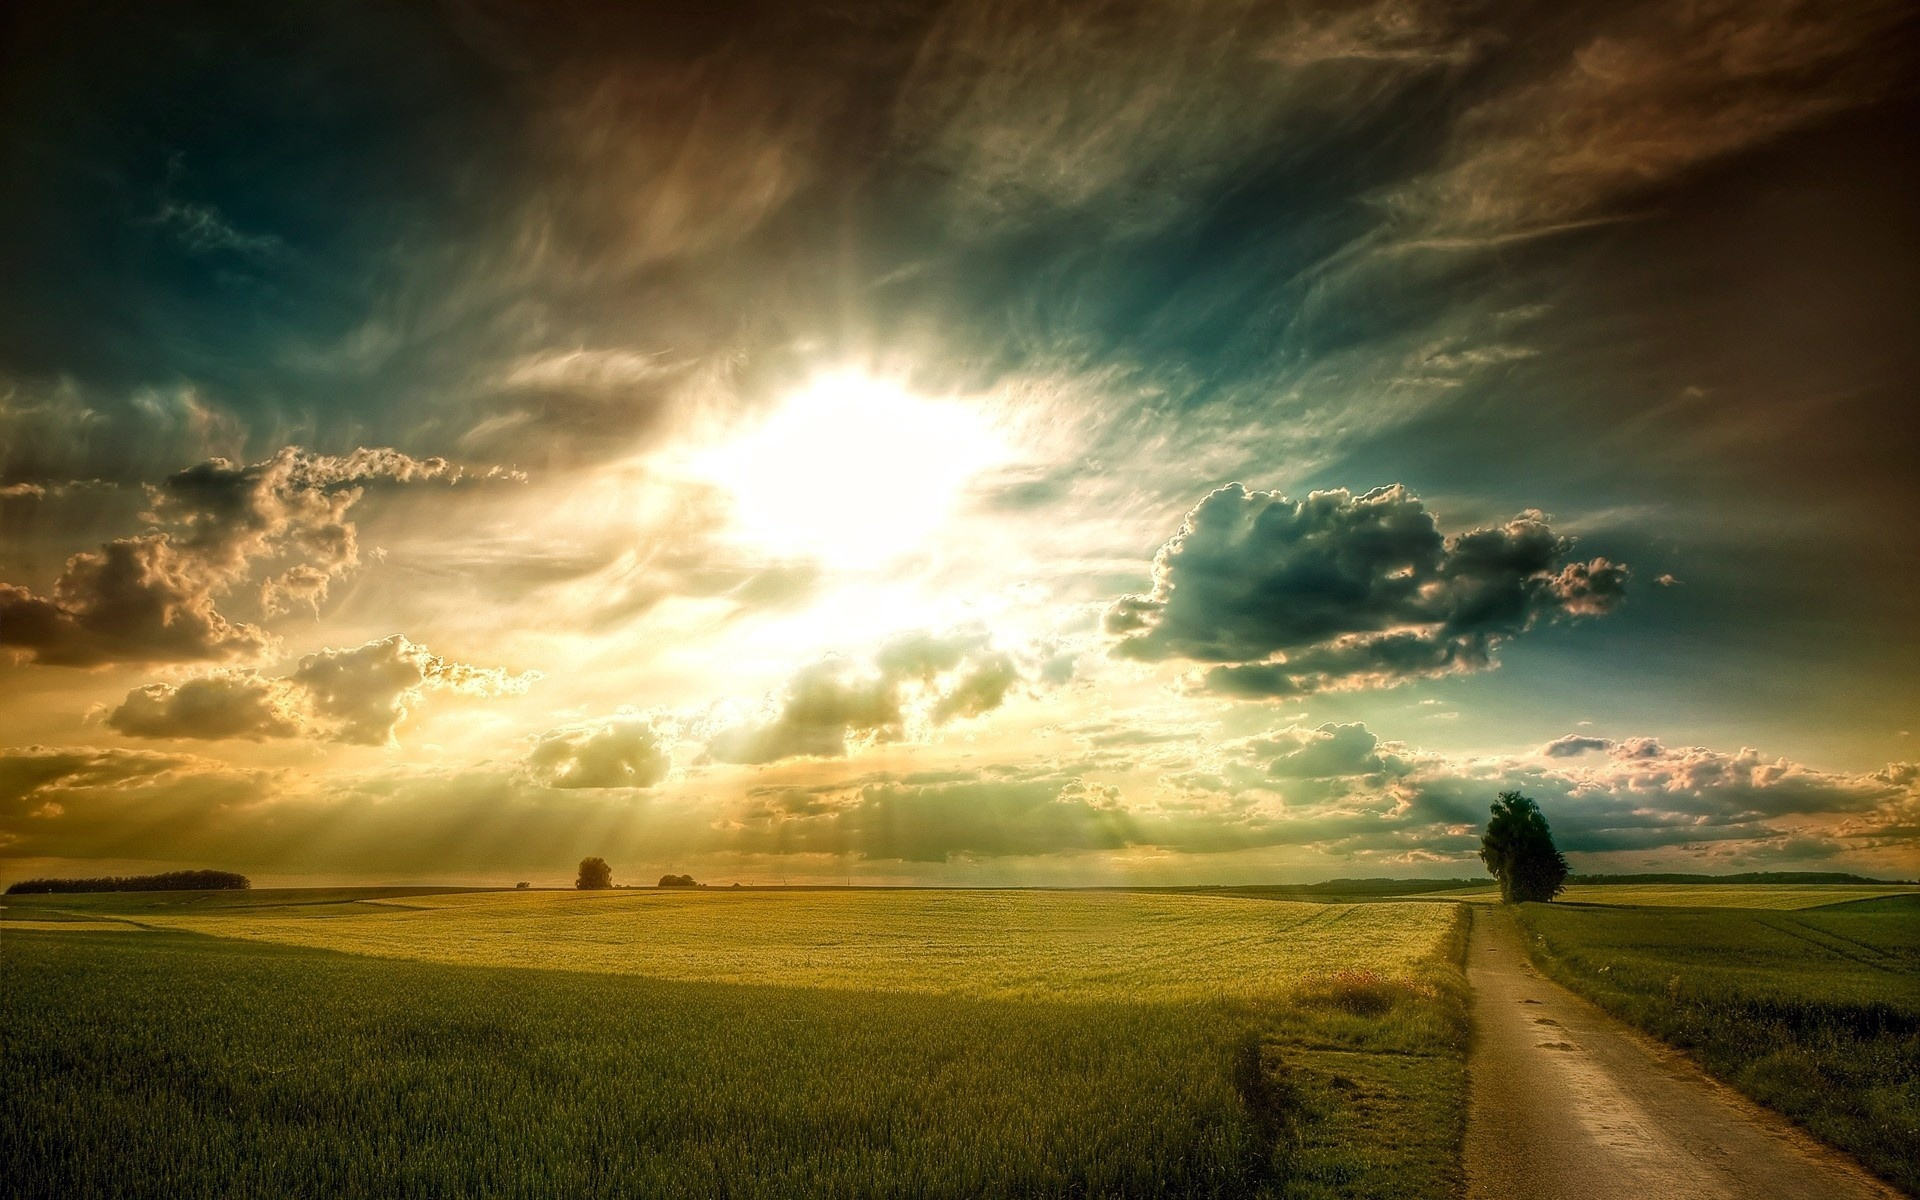 plains-landscape-grass-fields-road-tree-sky-clouds-sun-rays-1080p-wallpaper.jpg